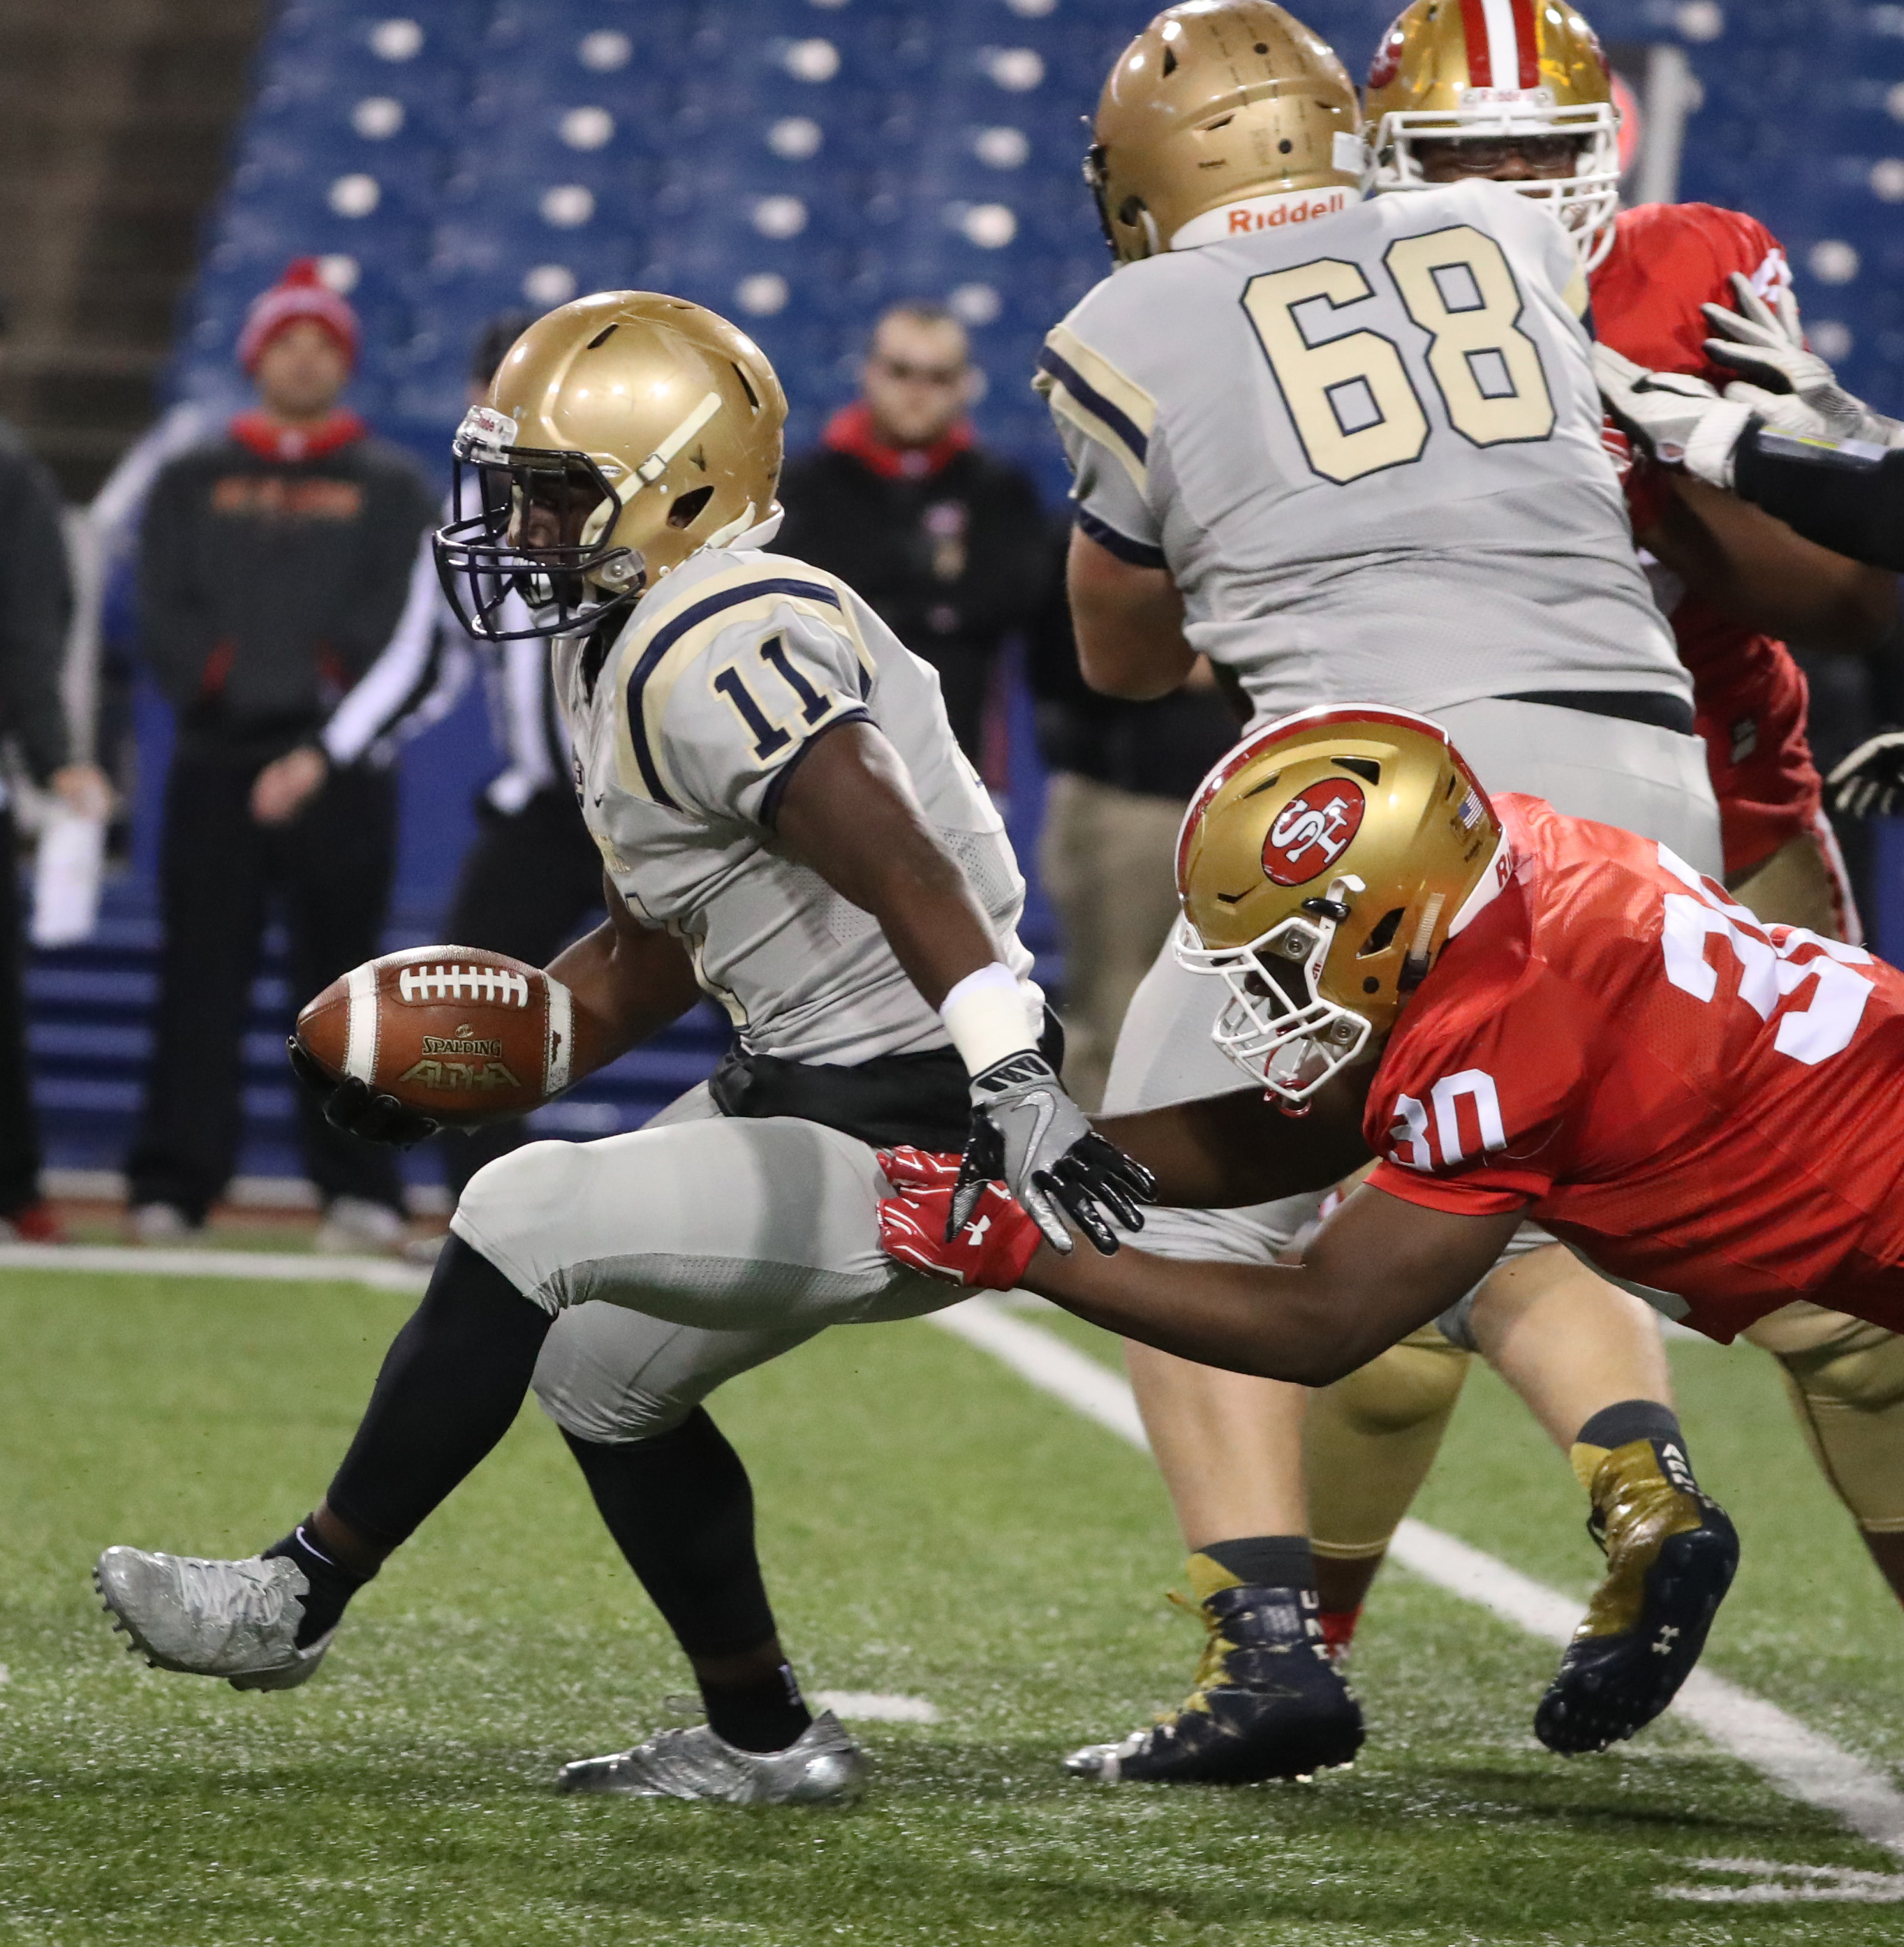 RaeQwon Greer rushed for two touchdowns and made an interception during Canisius' Monsignor Martin High School Athletic Association championship game win over St. Francis on Nov. 17.  (James P. McCoy/Buffalo News)